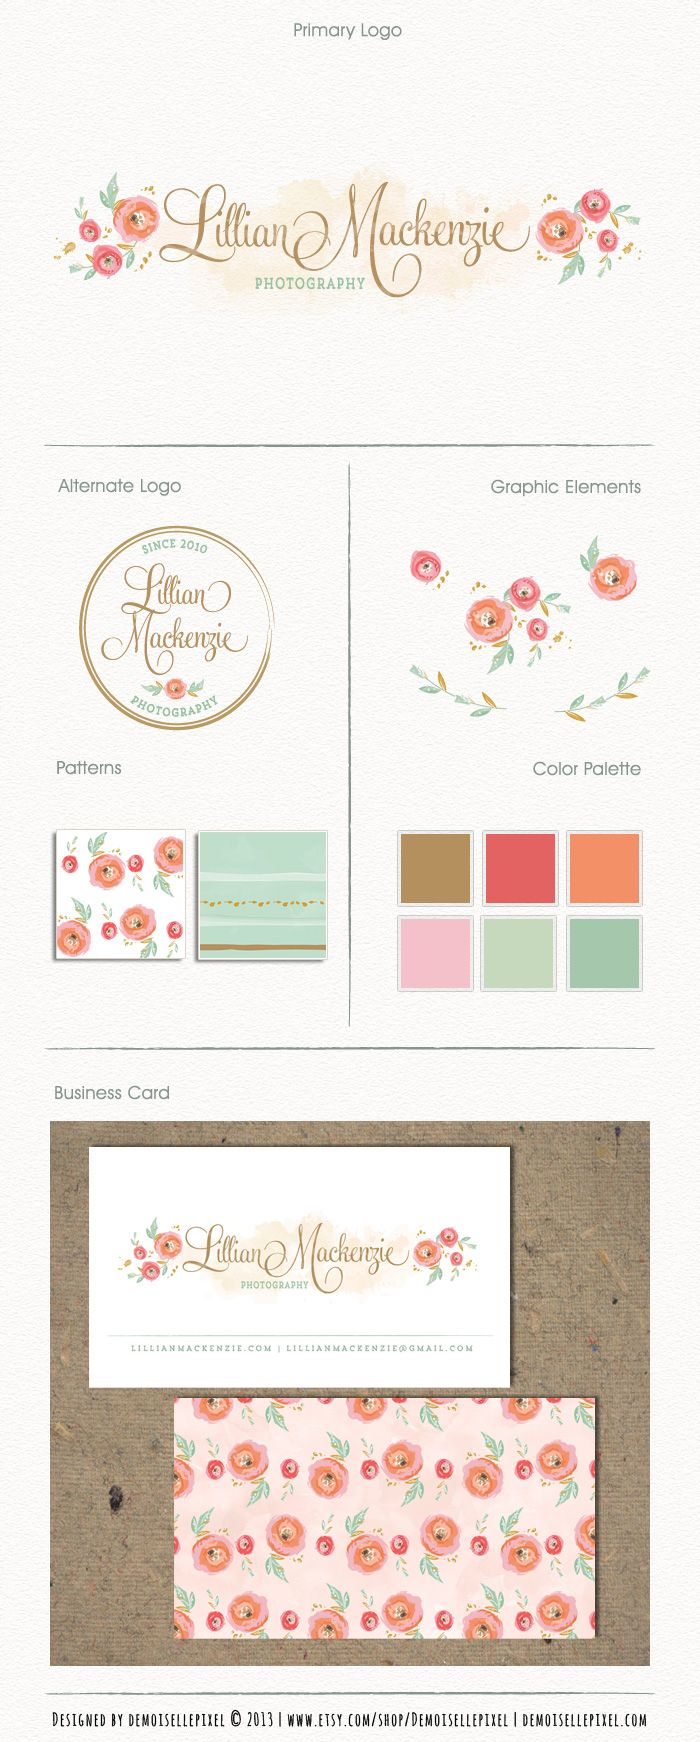 Premade Brand Identity Package at $99.90: https://www.etsy.com/listing/161069247/hand-drawn-brand-identity-package-with